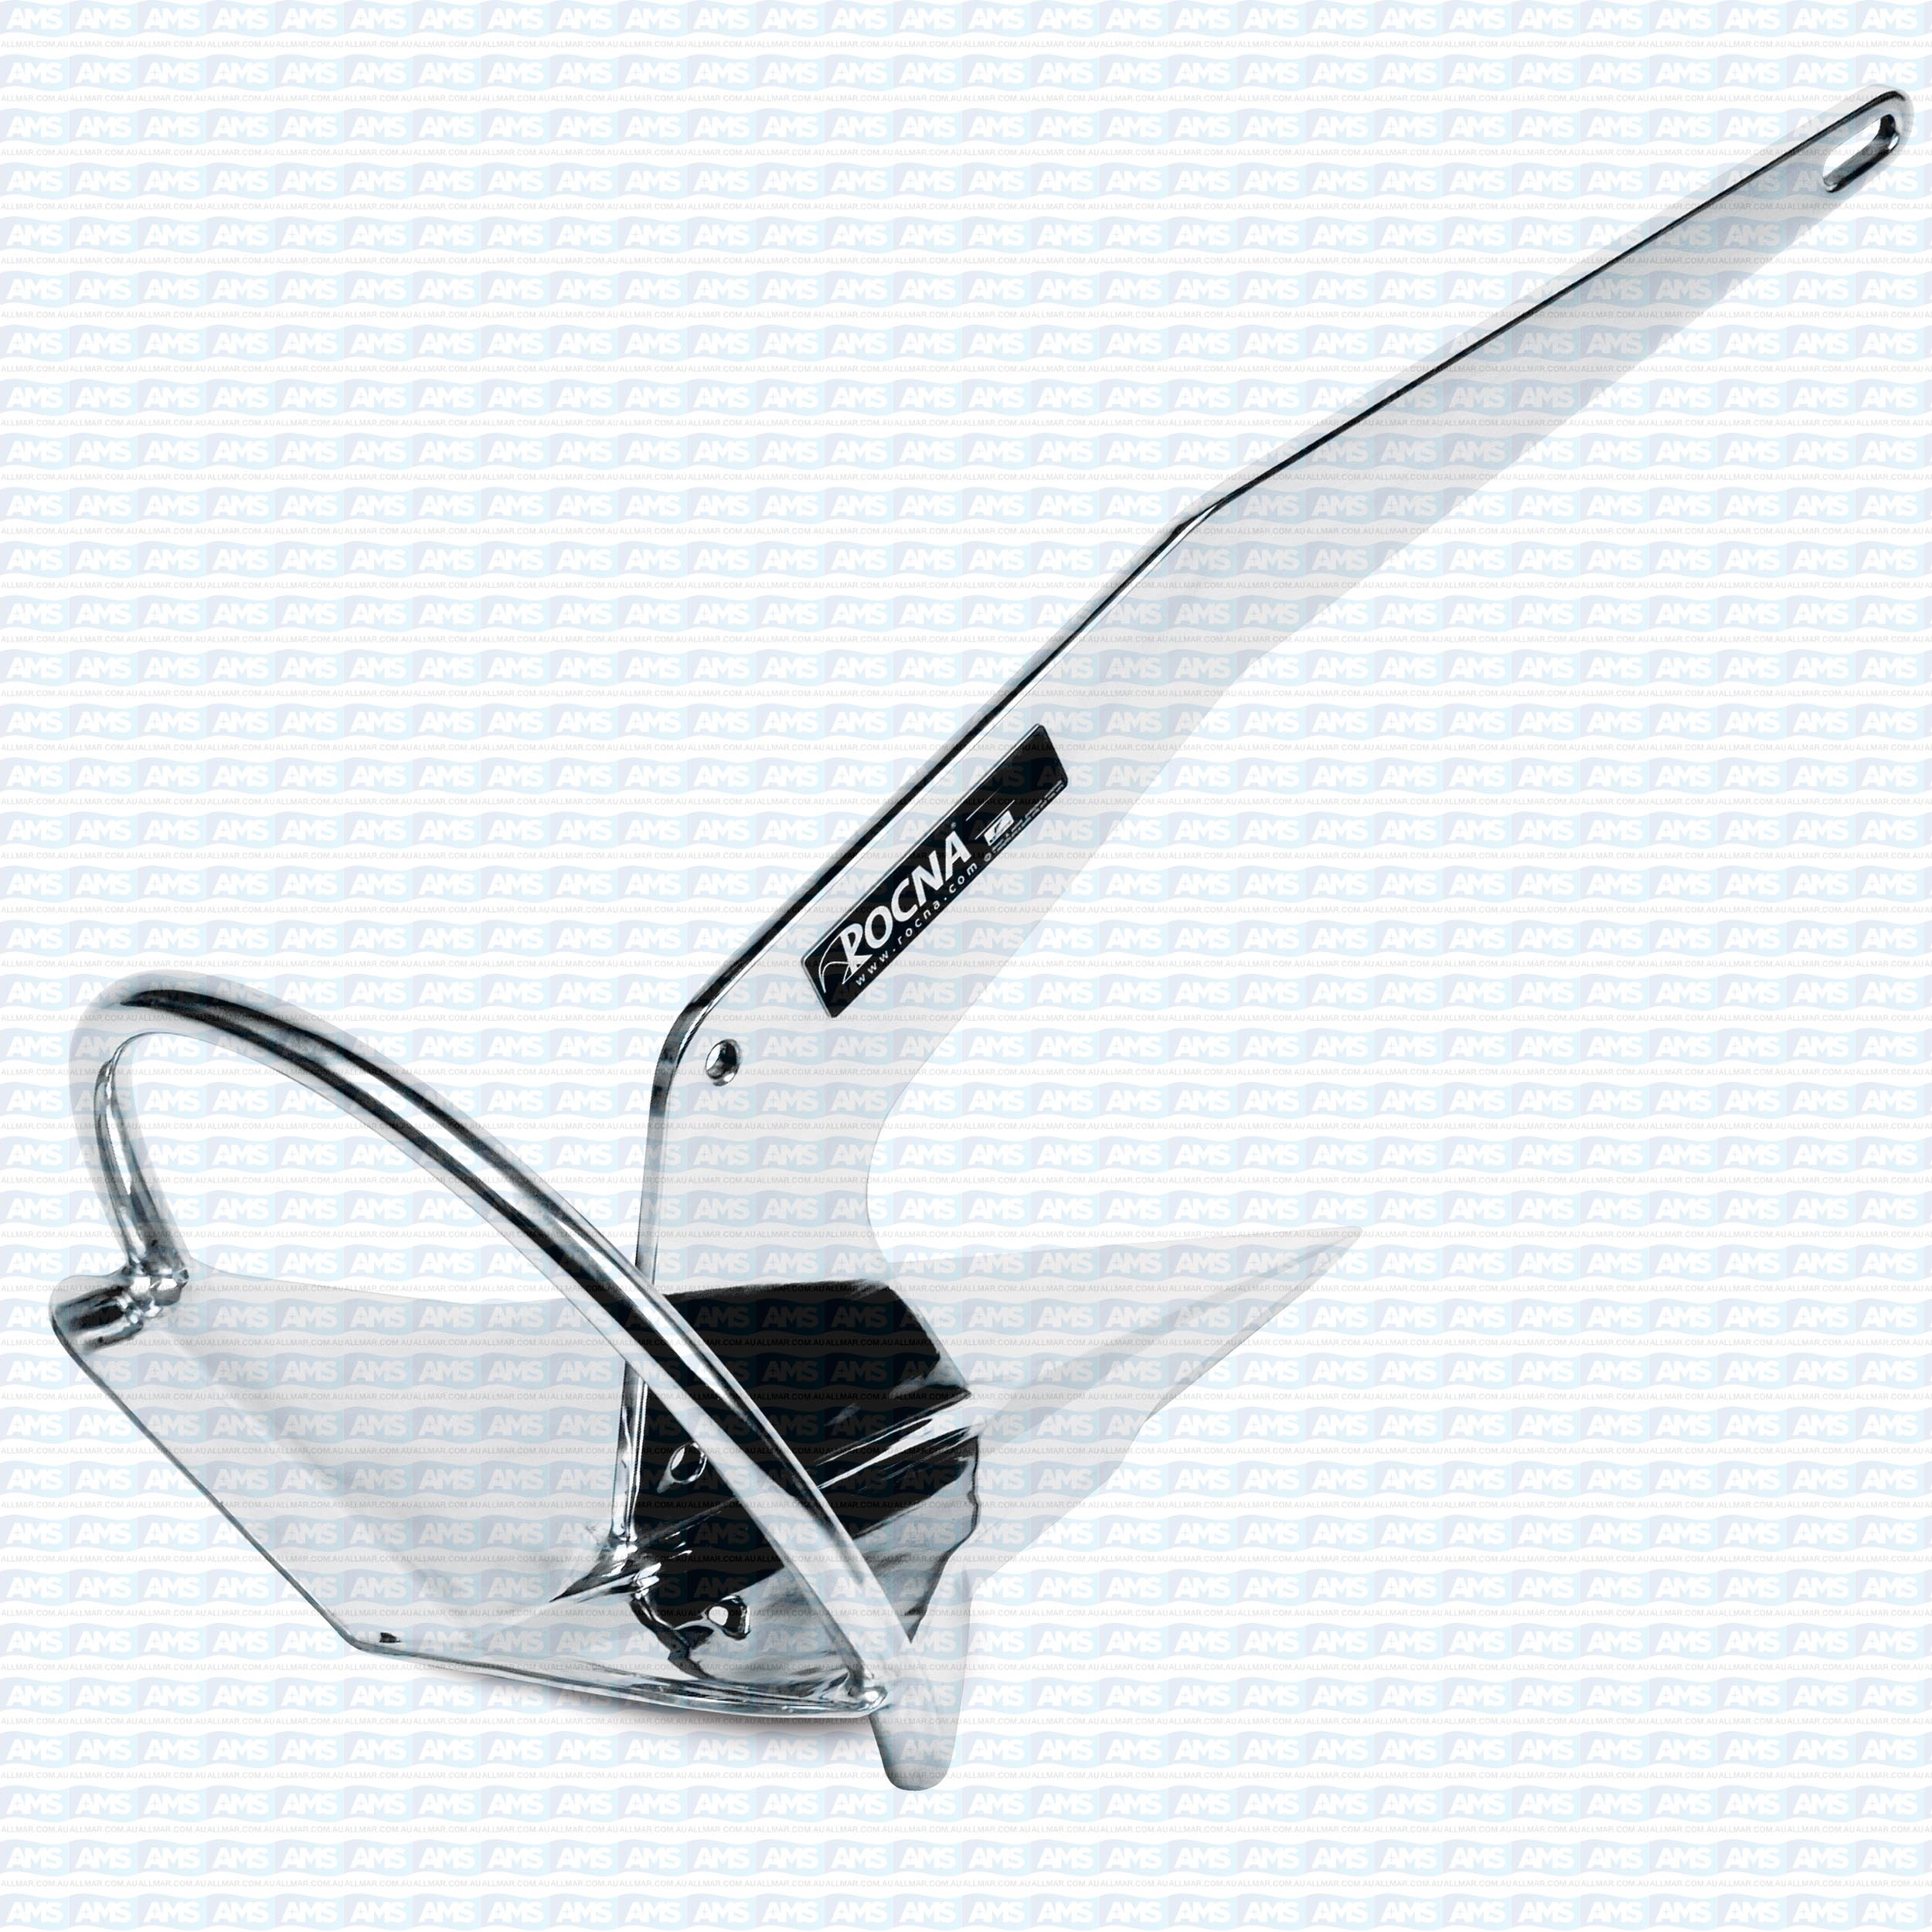 Rocna 55kg/121lb Stainless Steel Anchor